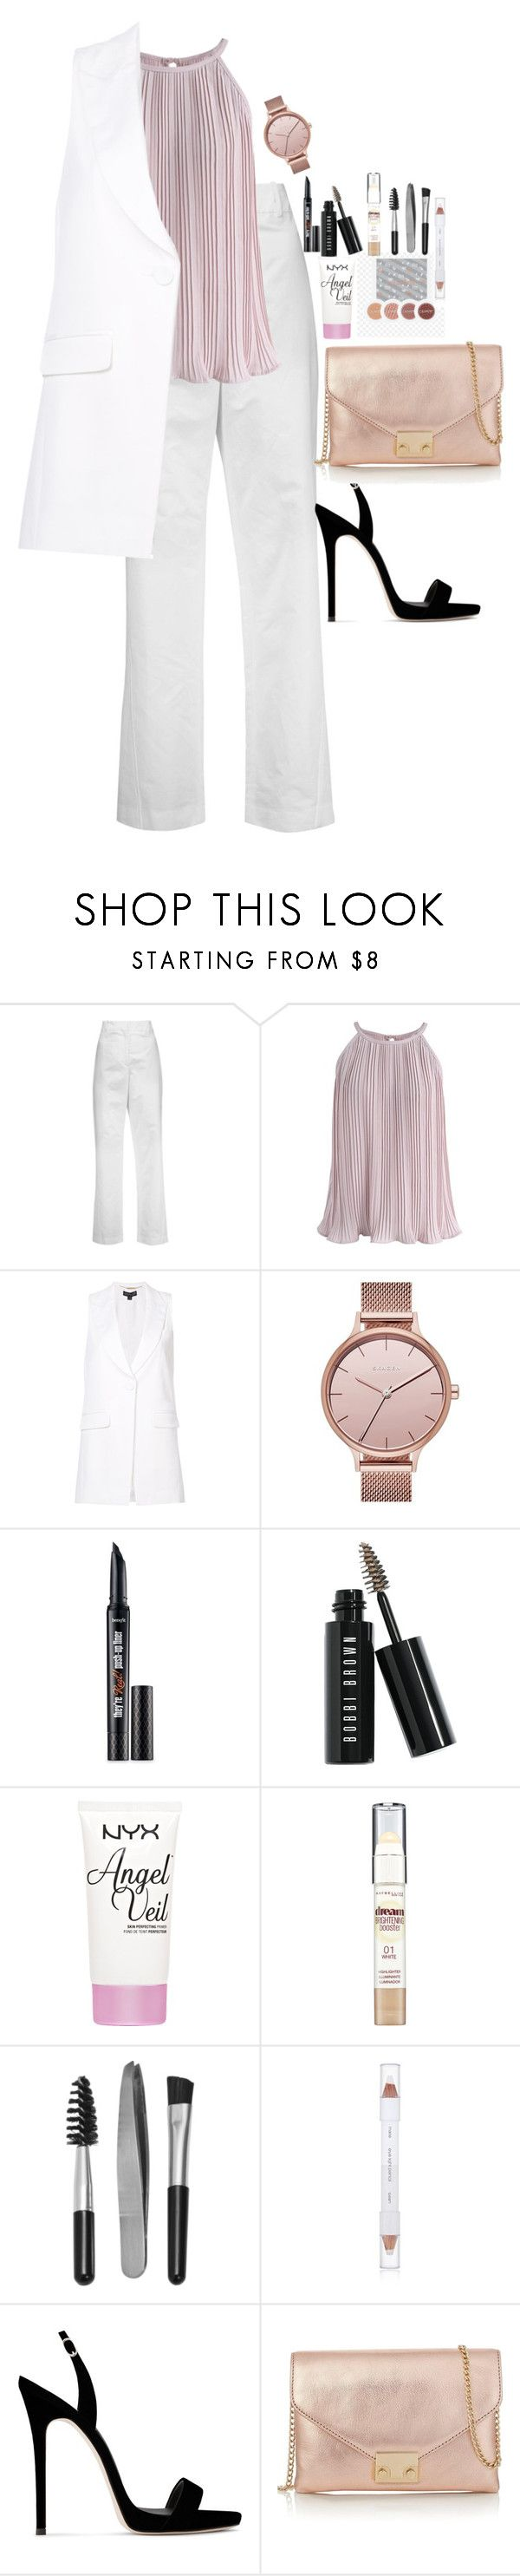 """""""Untitled #4417"""" by veronicaptr ❤ liked on Polyvore featuring Acne Studios, Chicwish, Rachel Zoe, Skagen, Benefit, Bobbi Brown Cosmetics, NYX, Maybelline, Sephora Collection and shu uemura"""